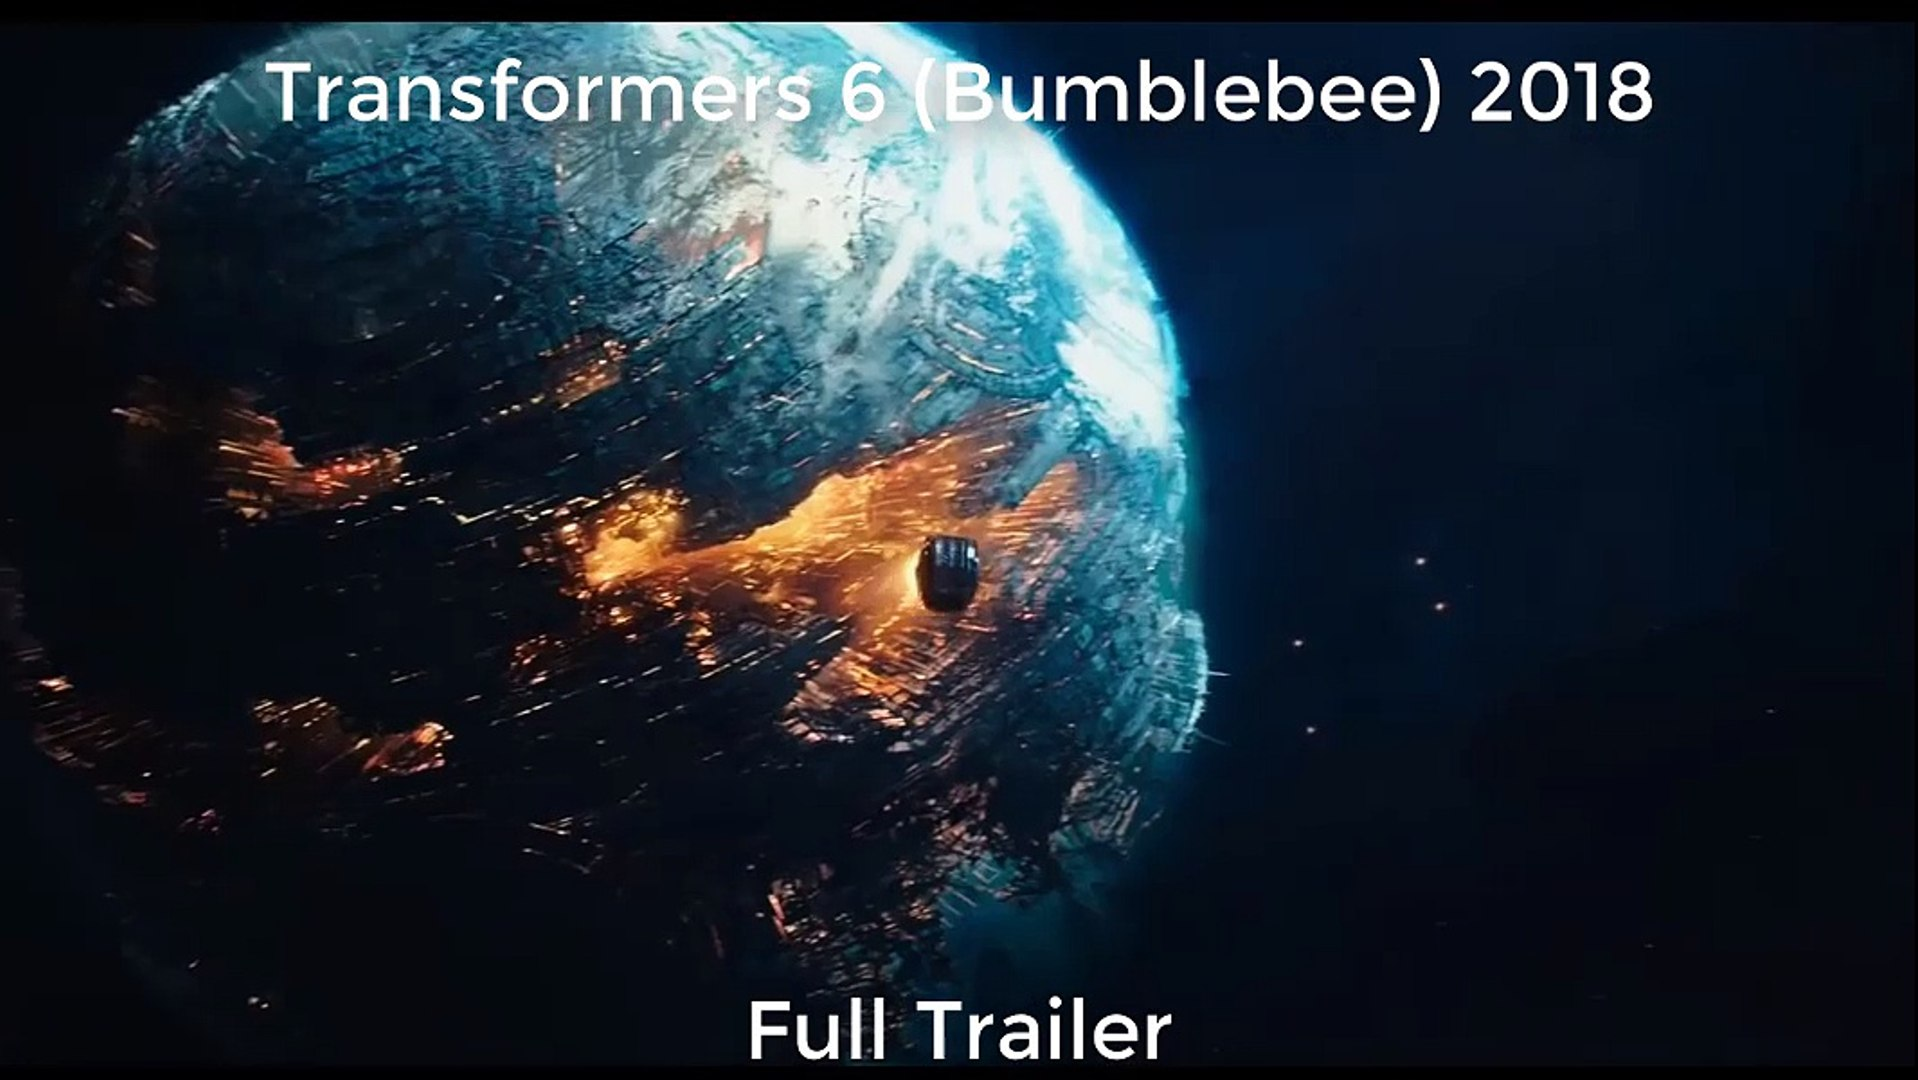 Transformers 6 (bumblebee) Official Trailer (2018)